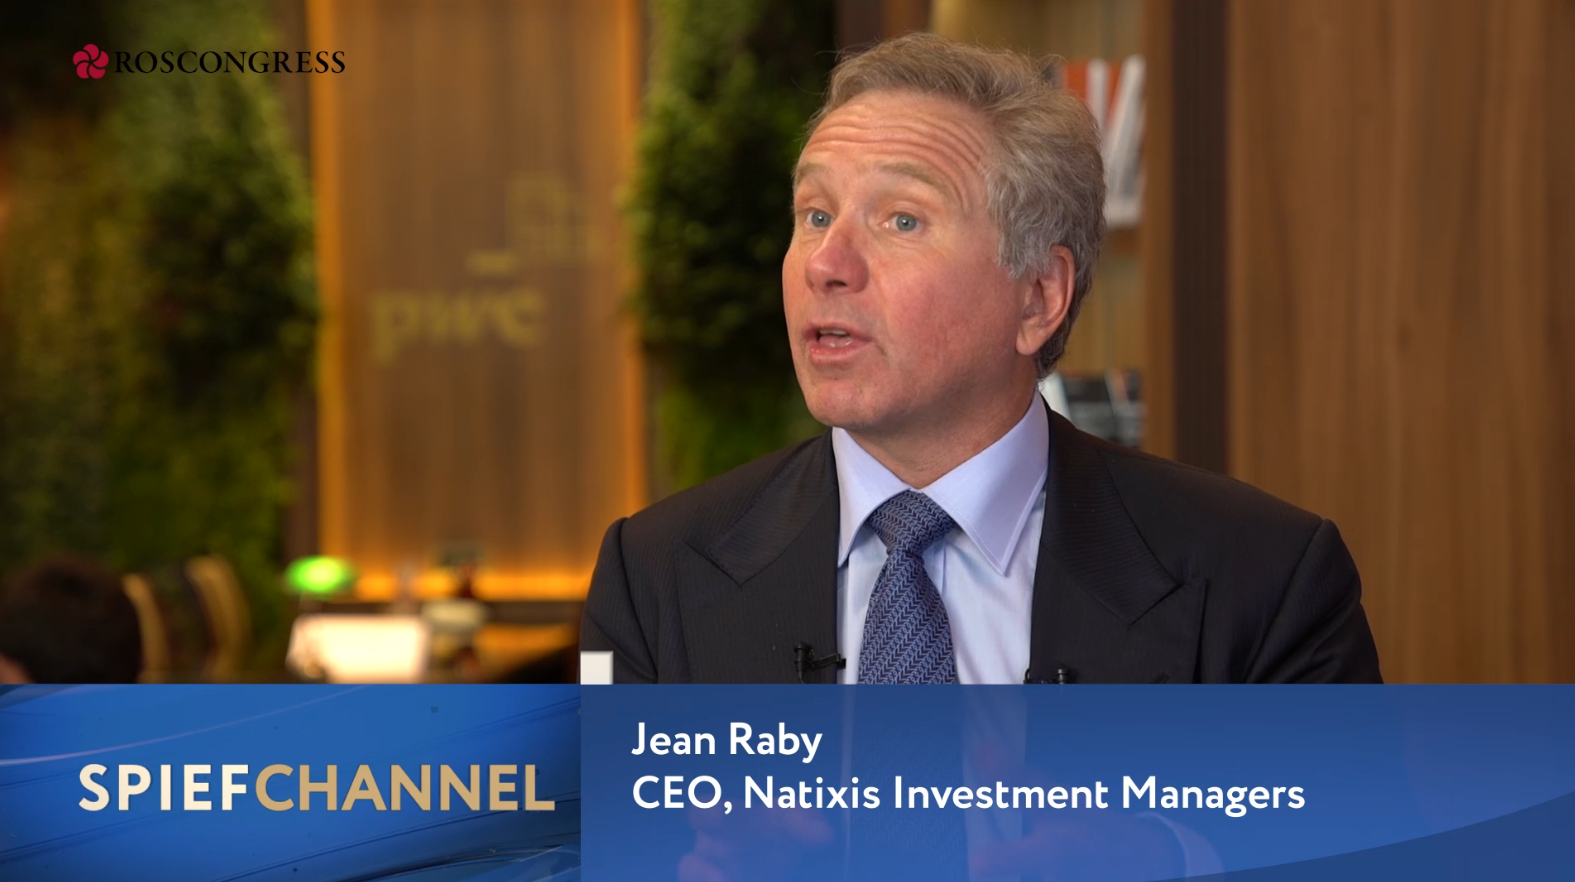 Jean Raby, CEO, Natixis Investment Managers